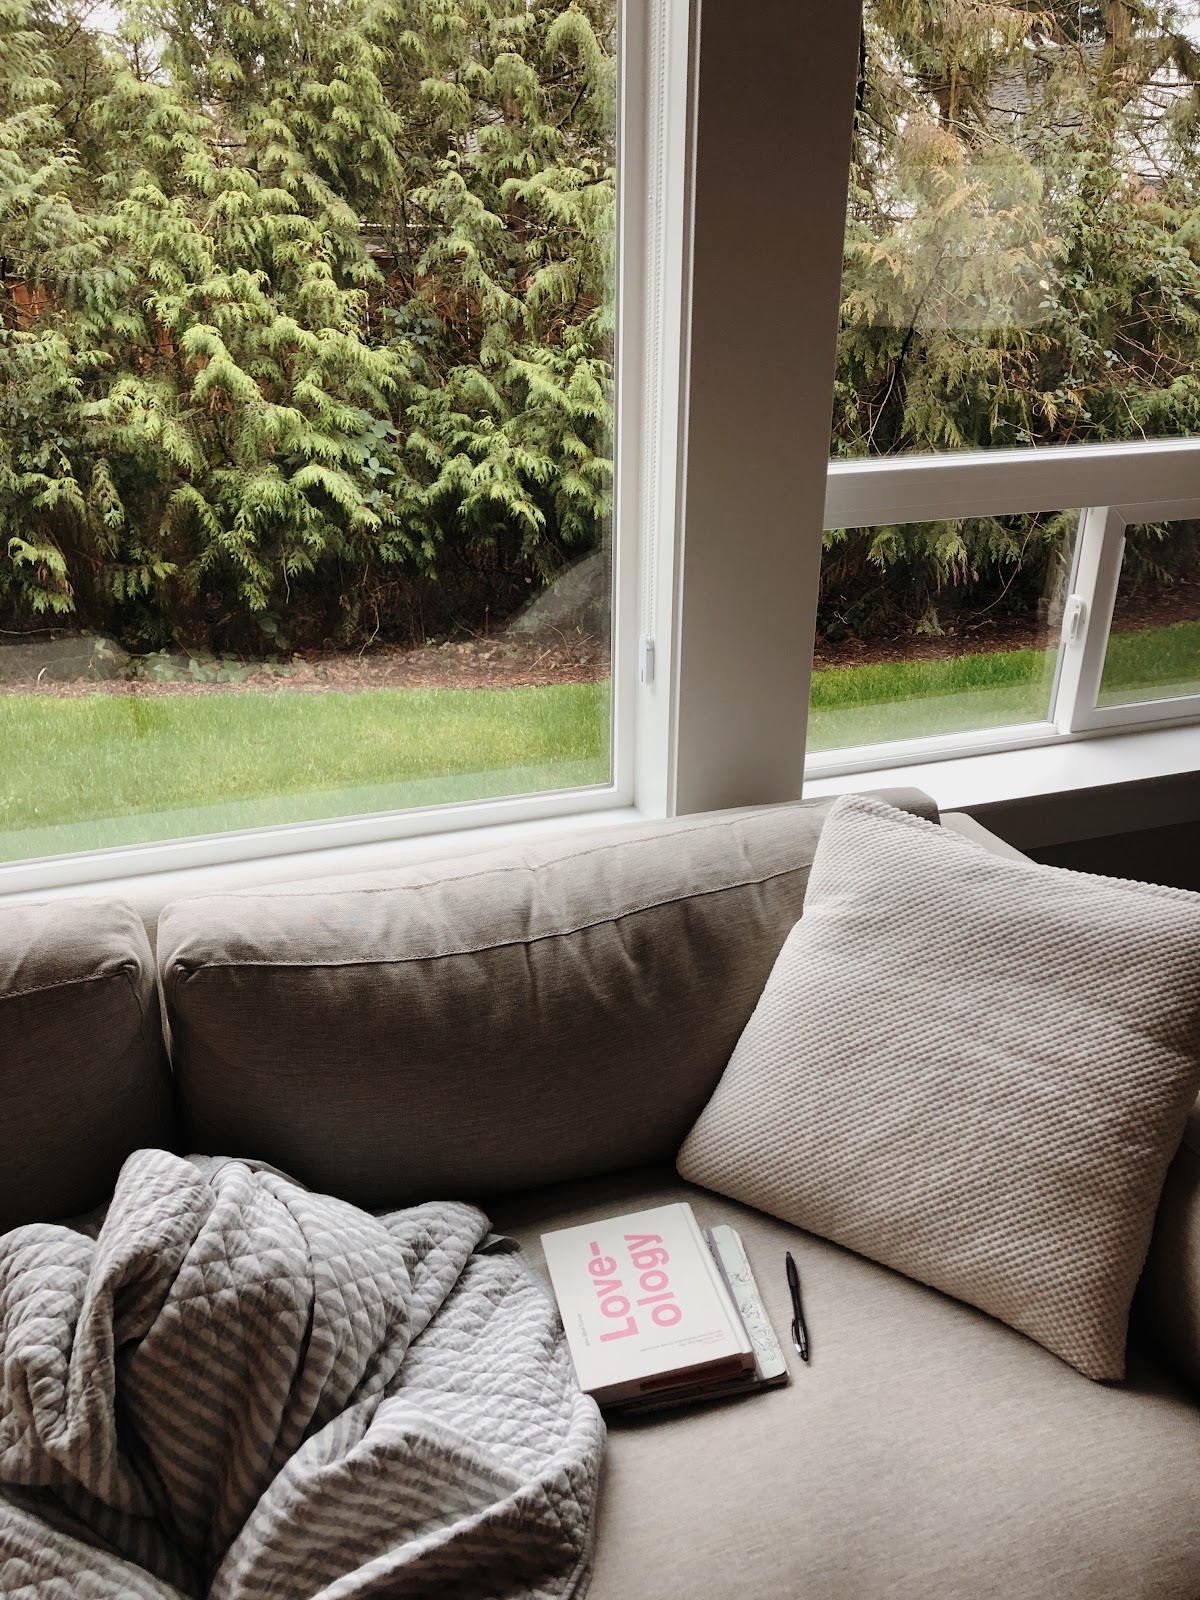 Loveology and a cozy corner